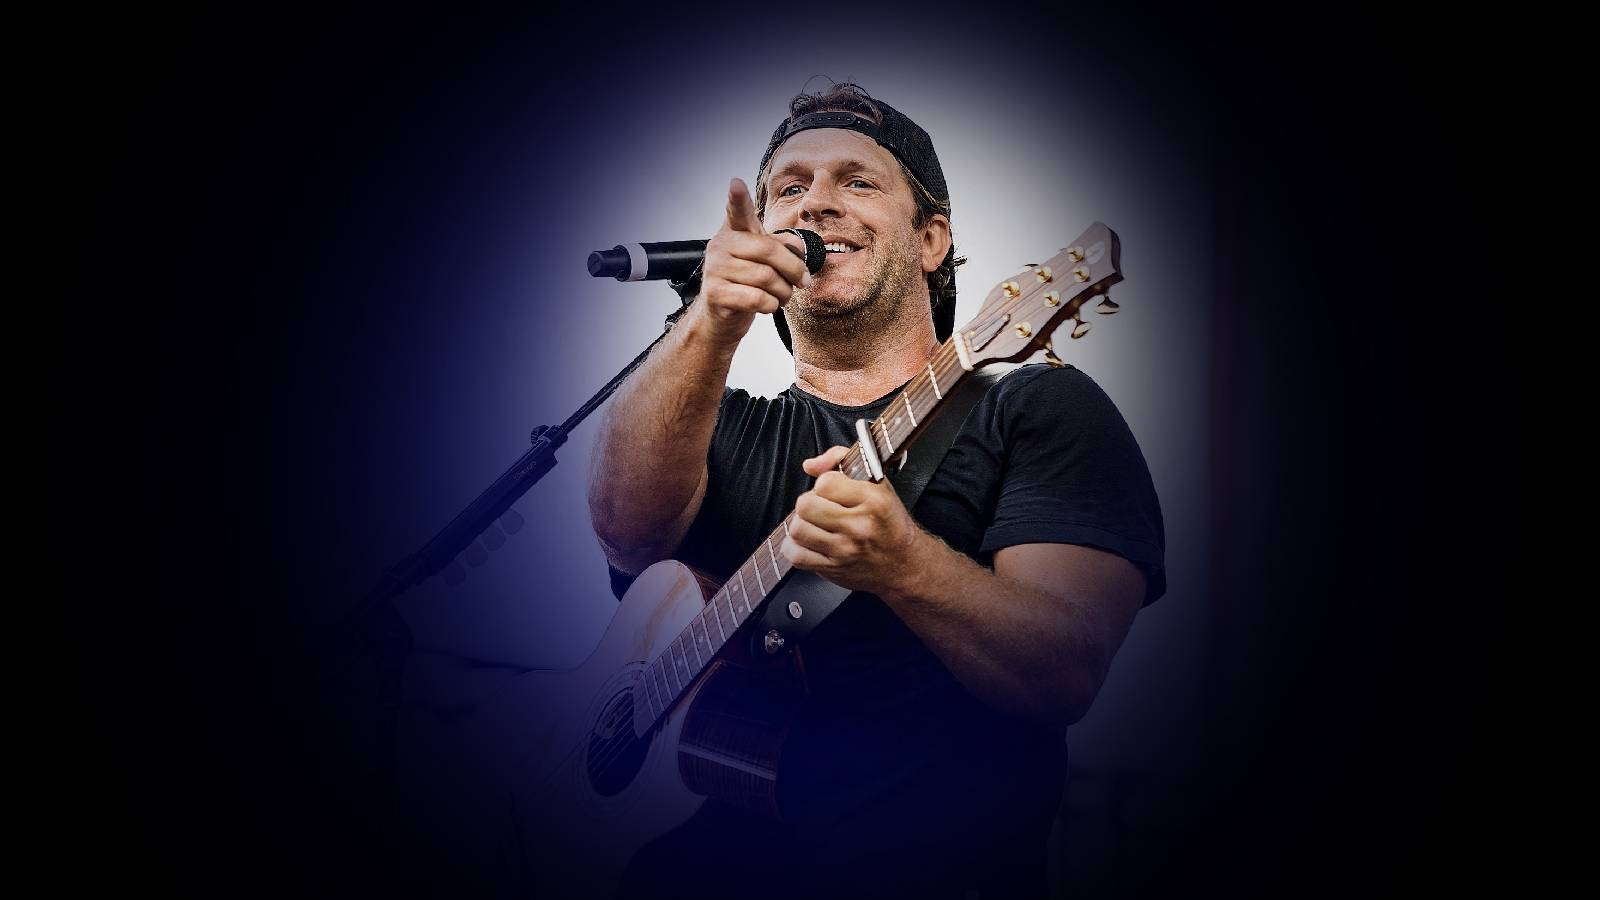 Billy Currington (18+ Event) (Rescheduled from 6/18)